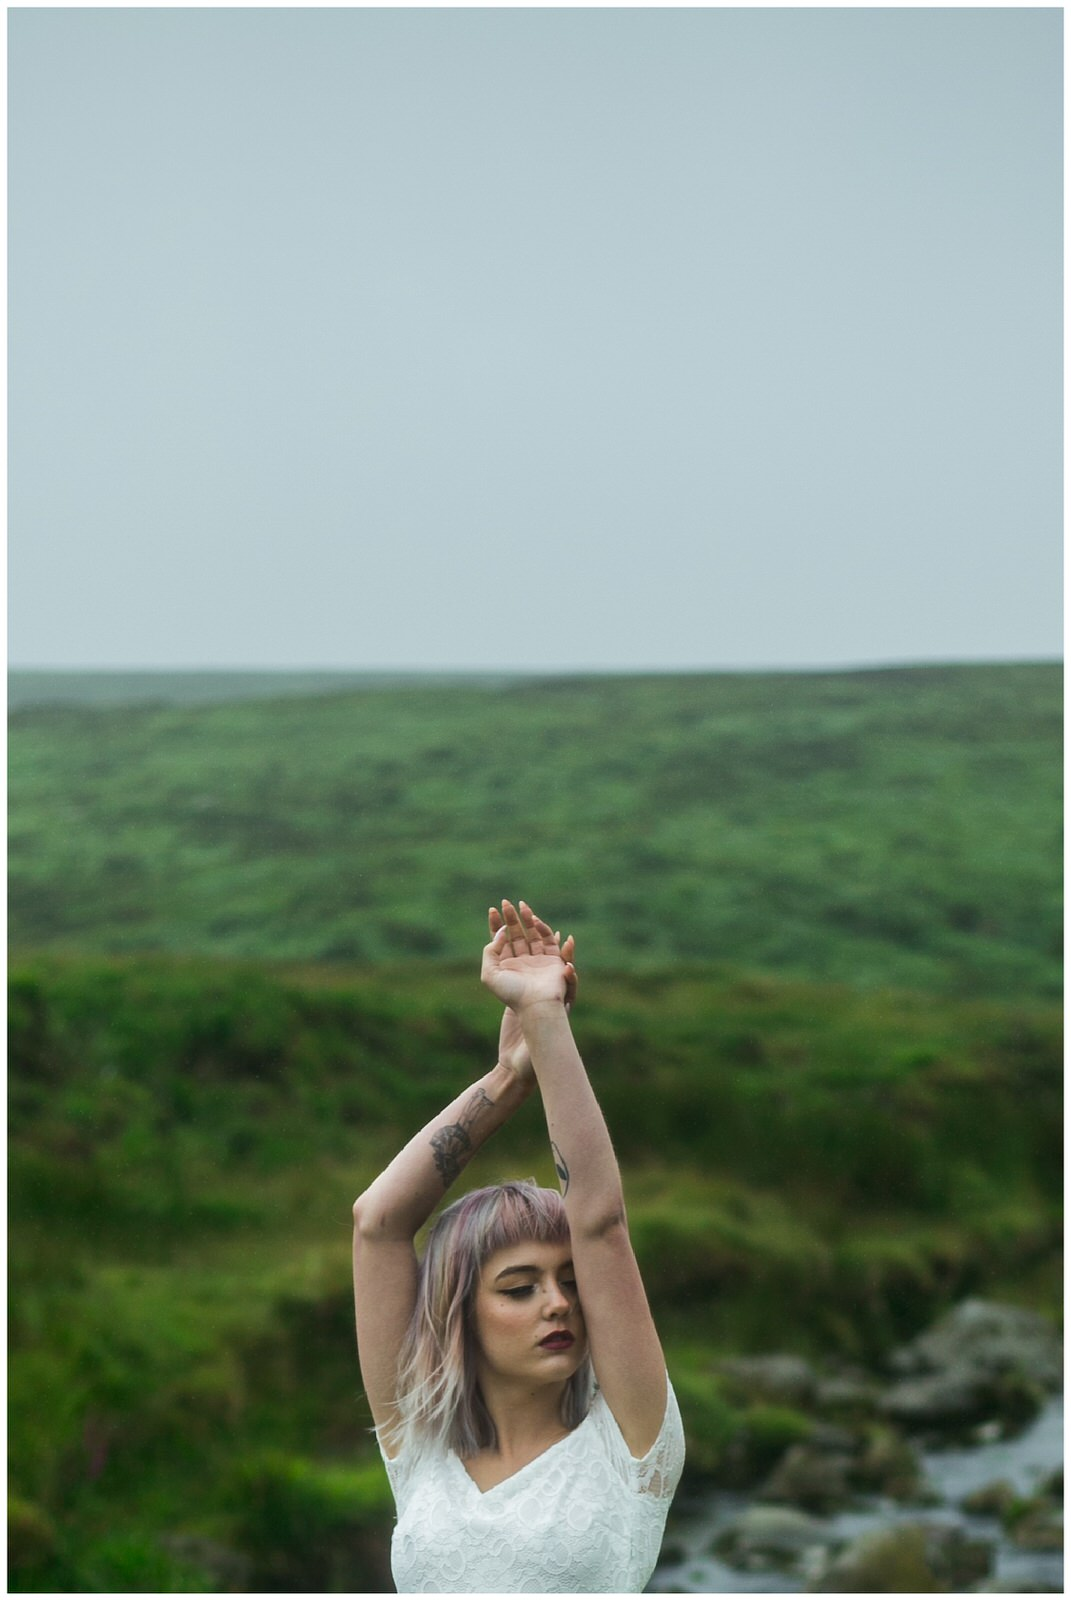 Wild Things Wed Photography - Caroline Mc Nally